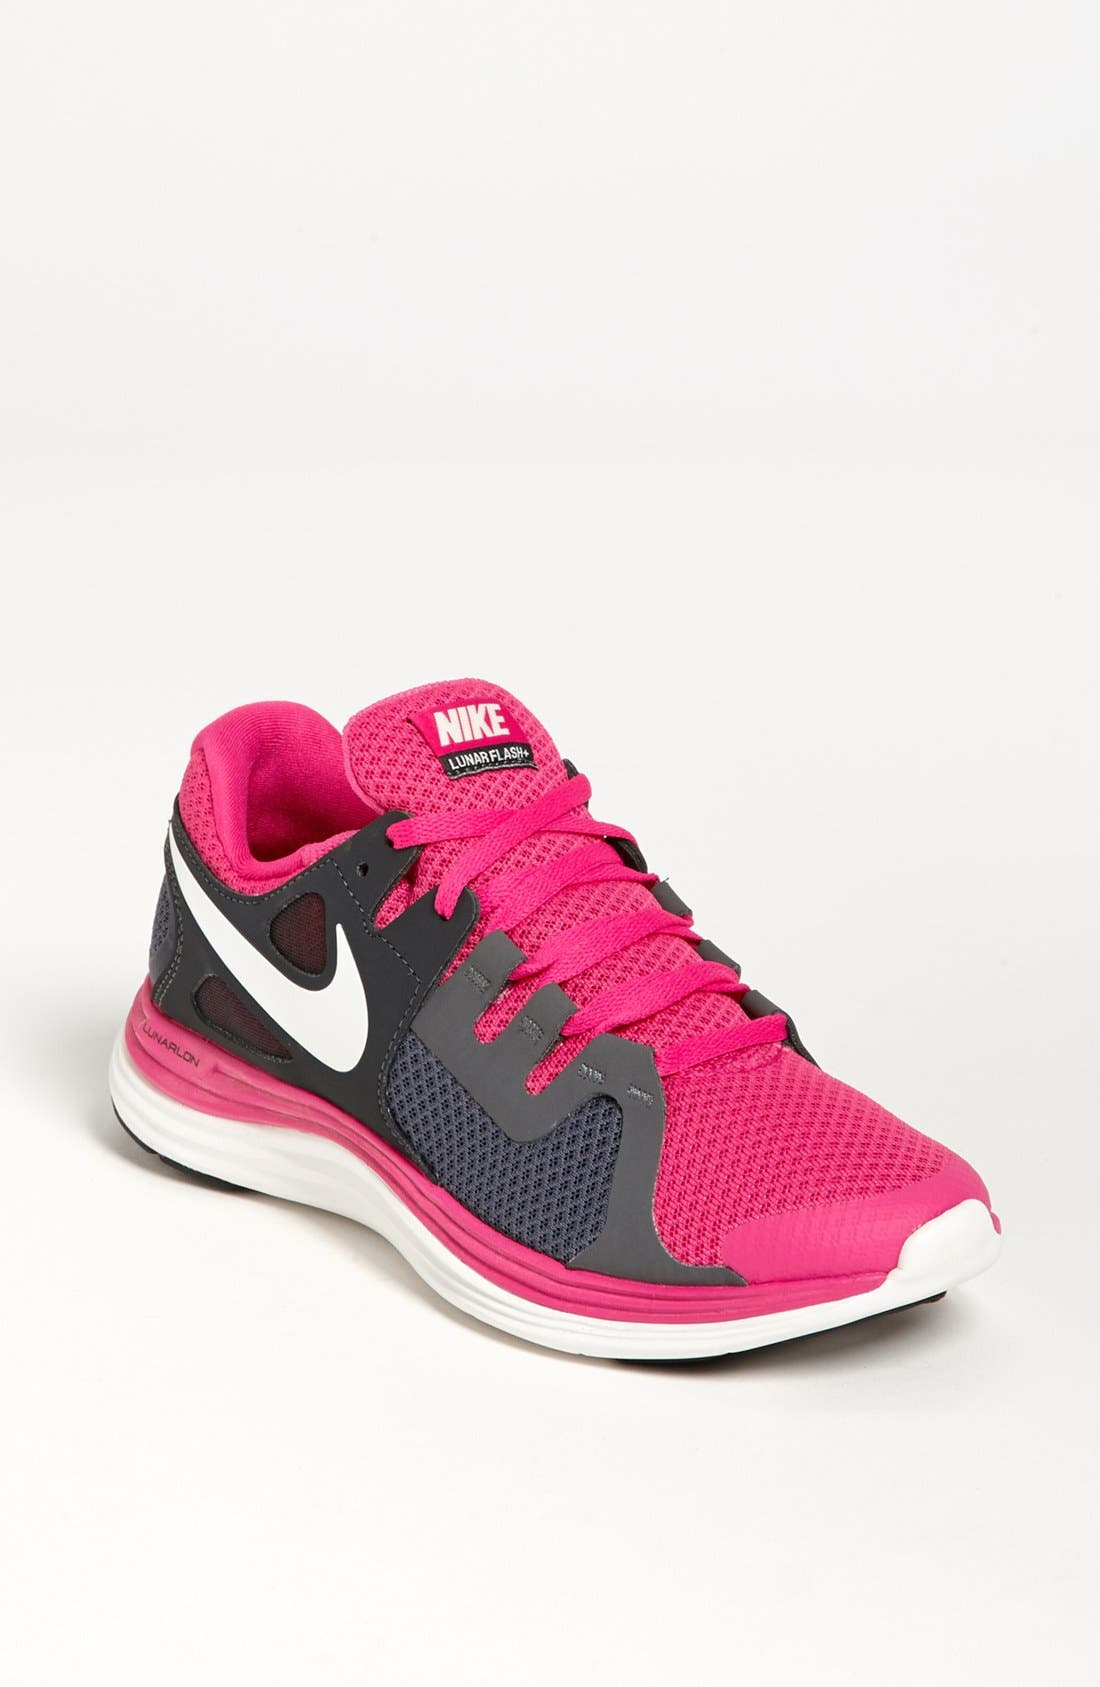 Main Image - Nike 'Lunarflash' Running Shoe (Women)